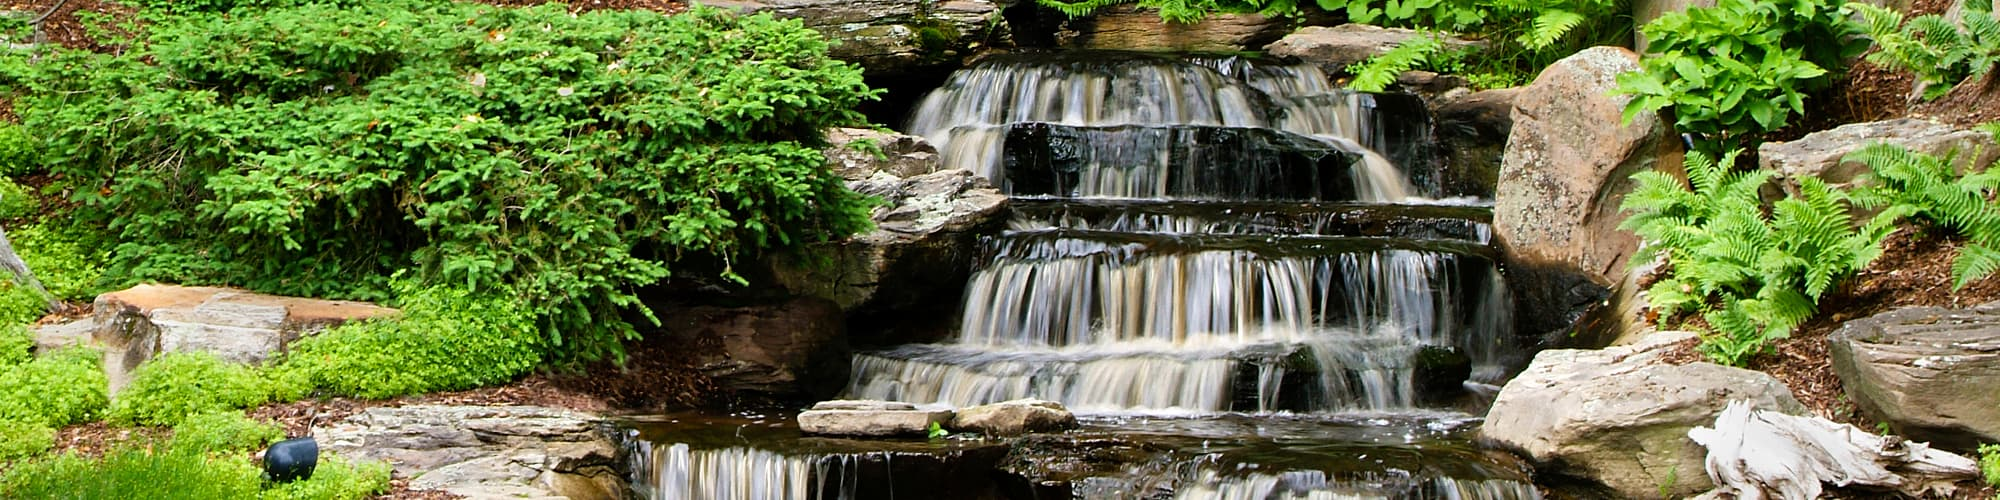 Waterfall and Pond Care - Windscapes Landscaping - Landscape Design Grand Rapids MI